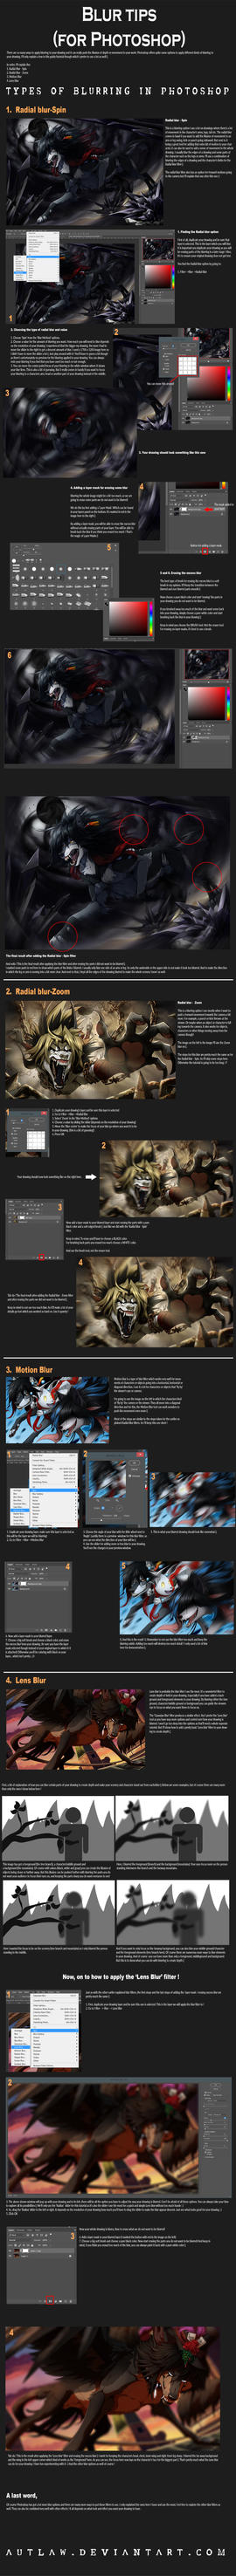 Photoshop tutorials deviantart gallery wulben 45 3 tips for various blur filters photoshop by autlaw baditri Gallery